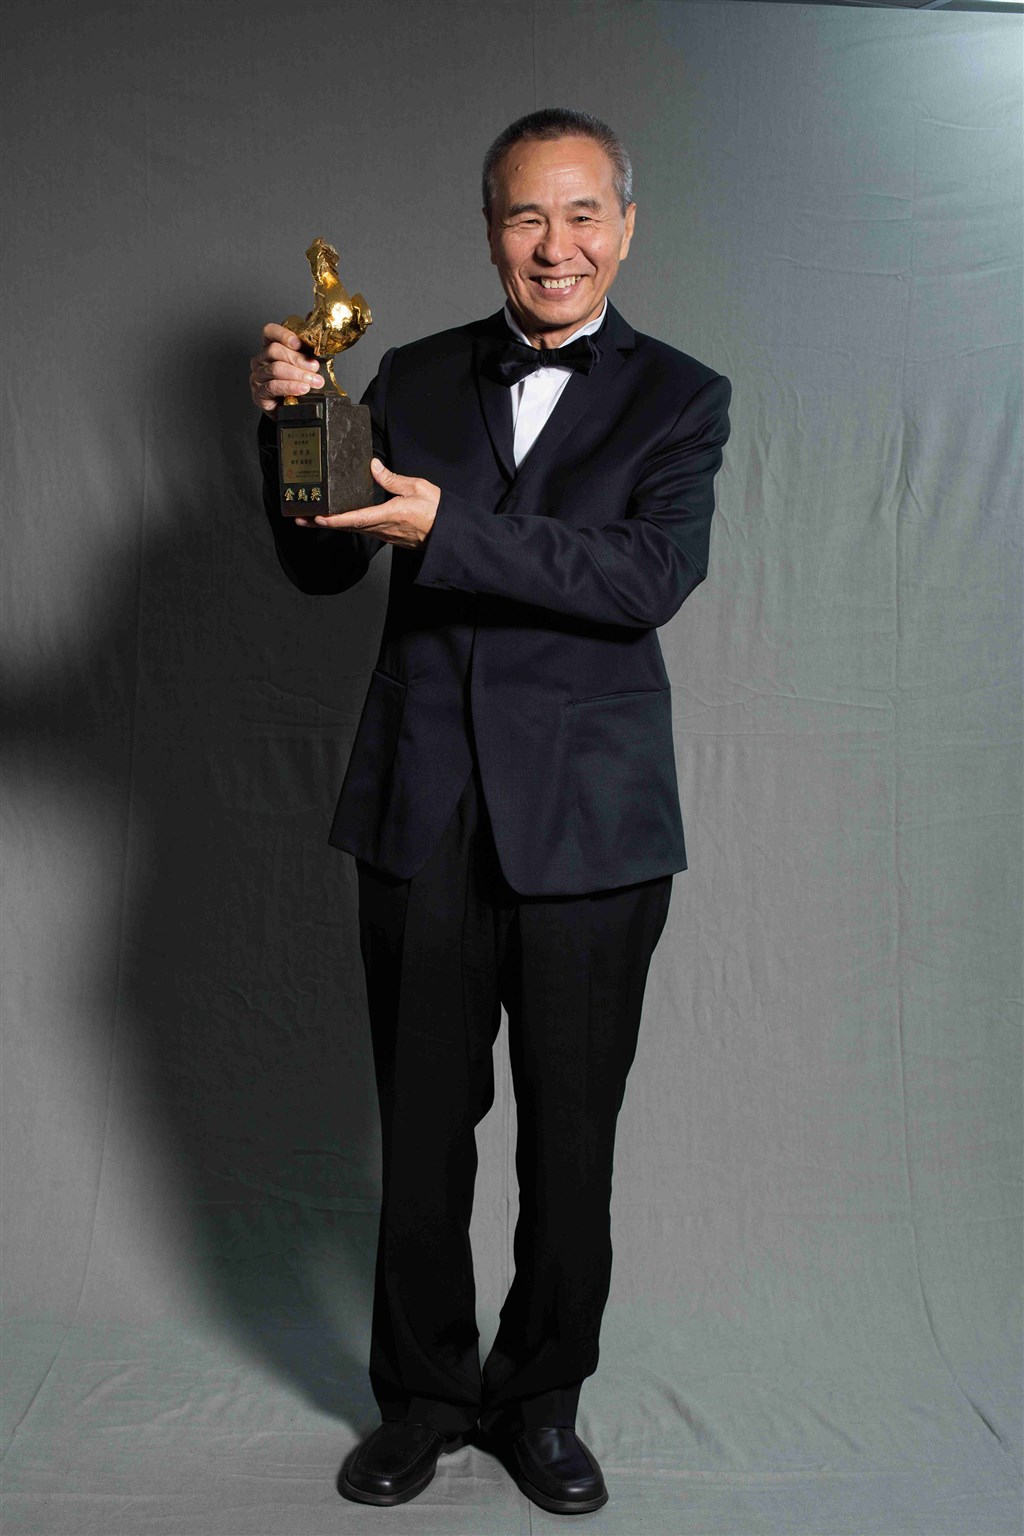 Golden Horse Film Festival Executive Committee unanimously grants Lifetime Achievement Award to Hou Hsiao-hsien